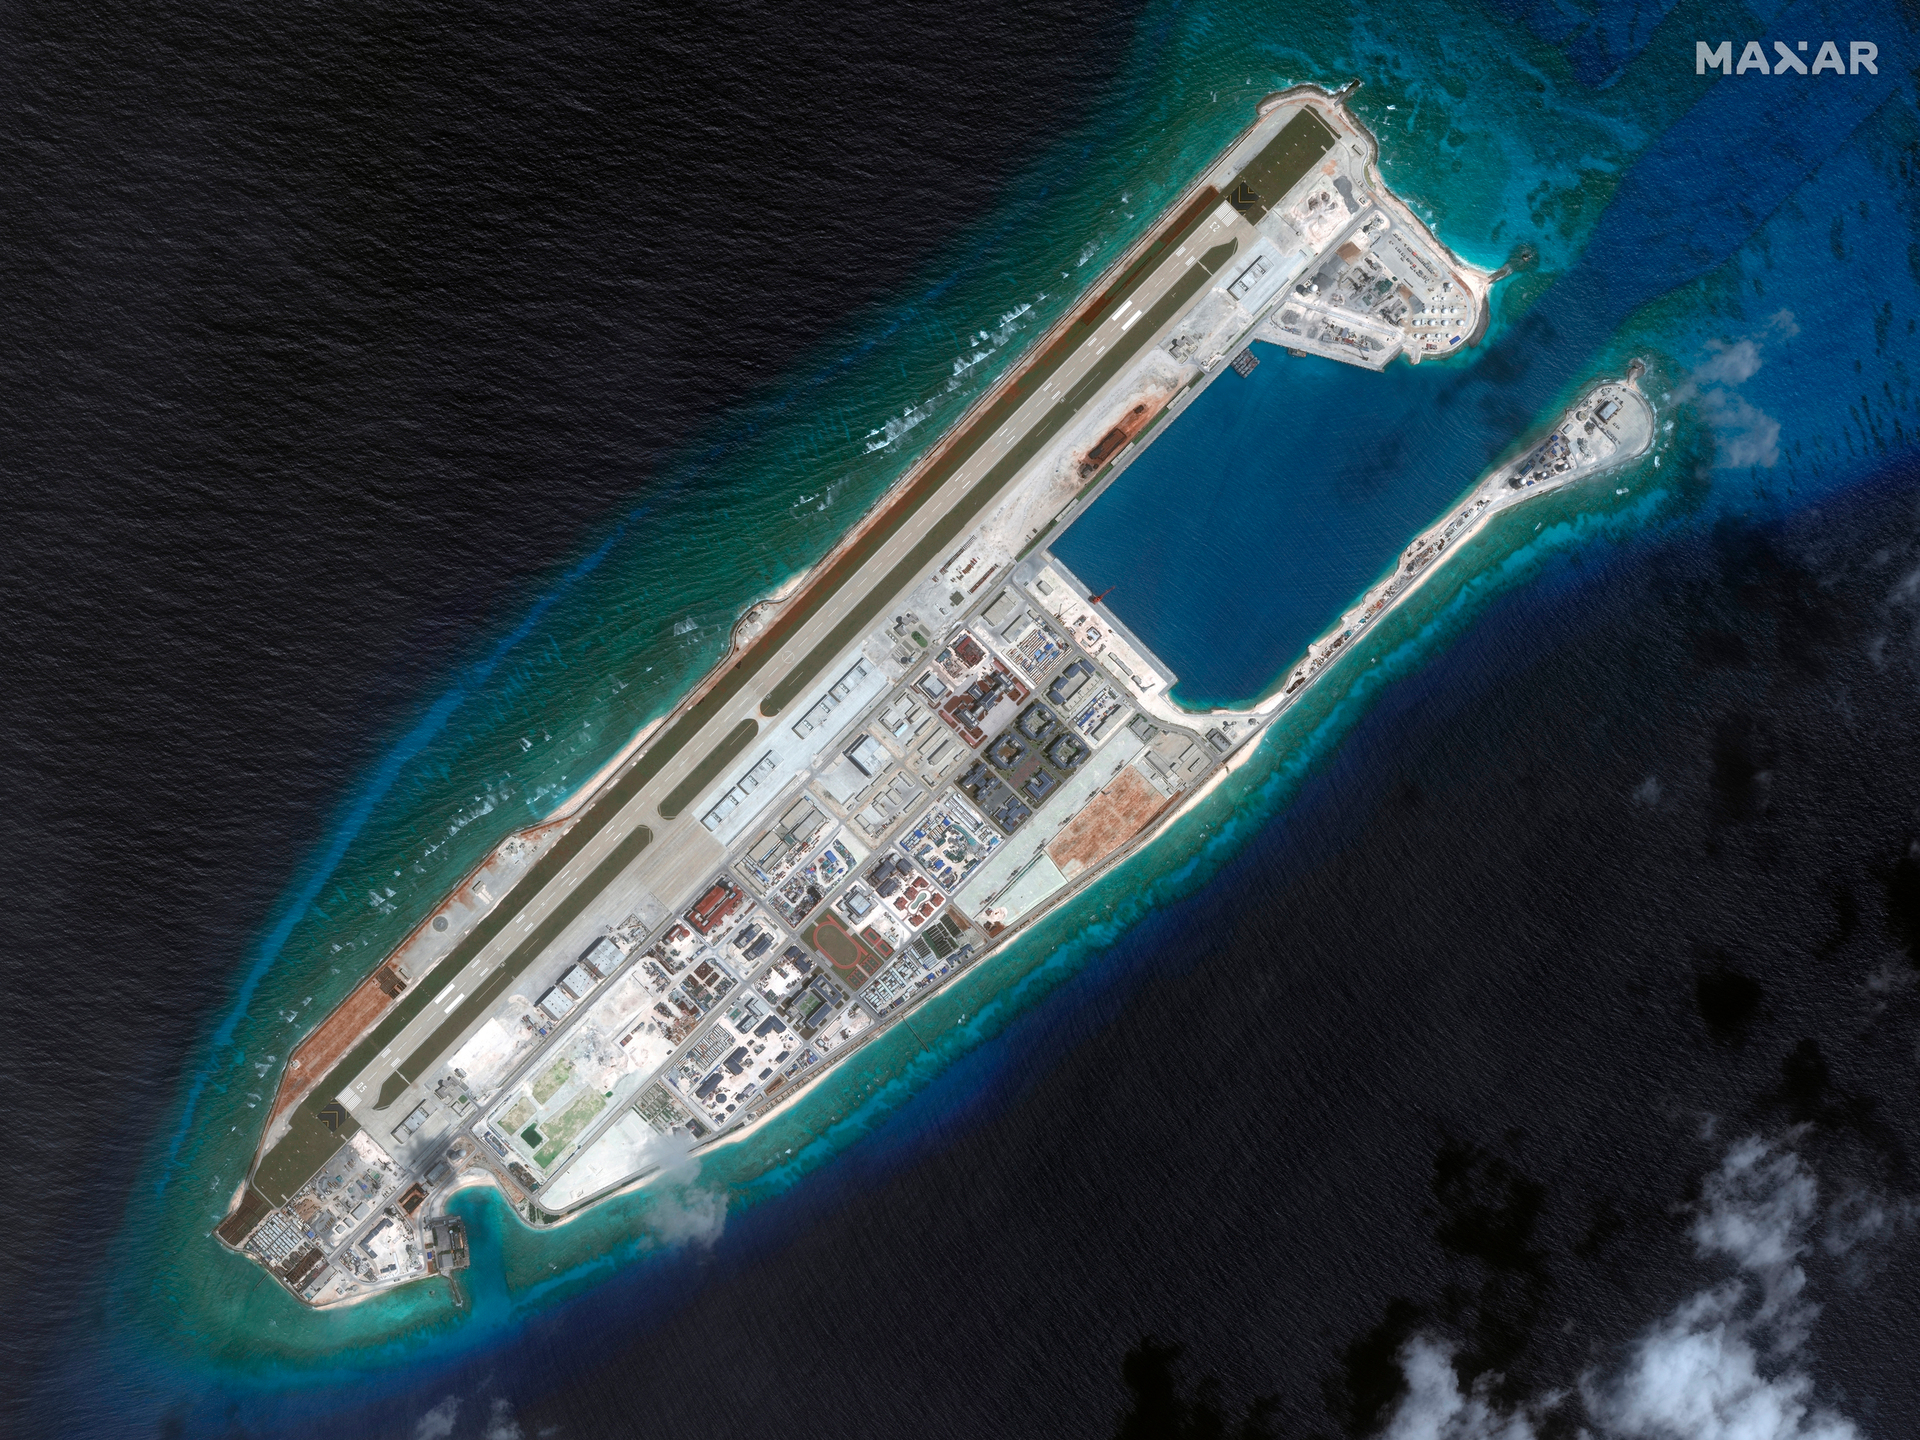 China's 'dangerous' South China Sea plan almost complete